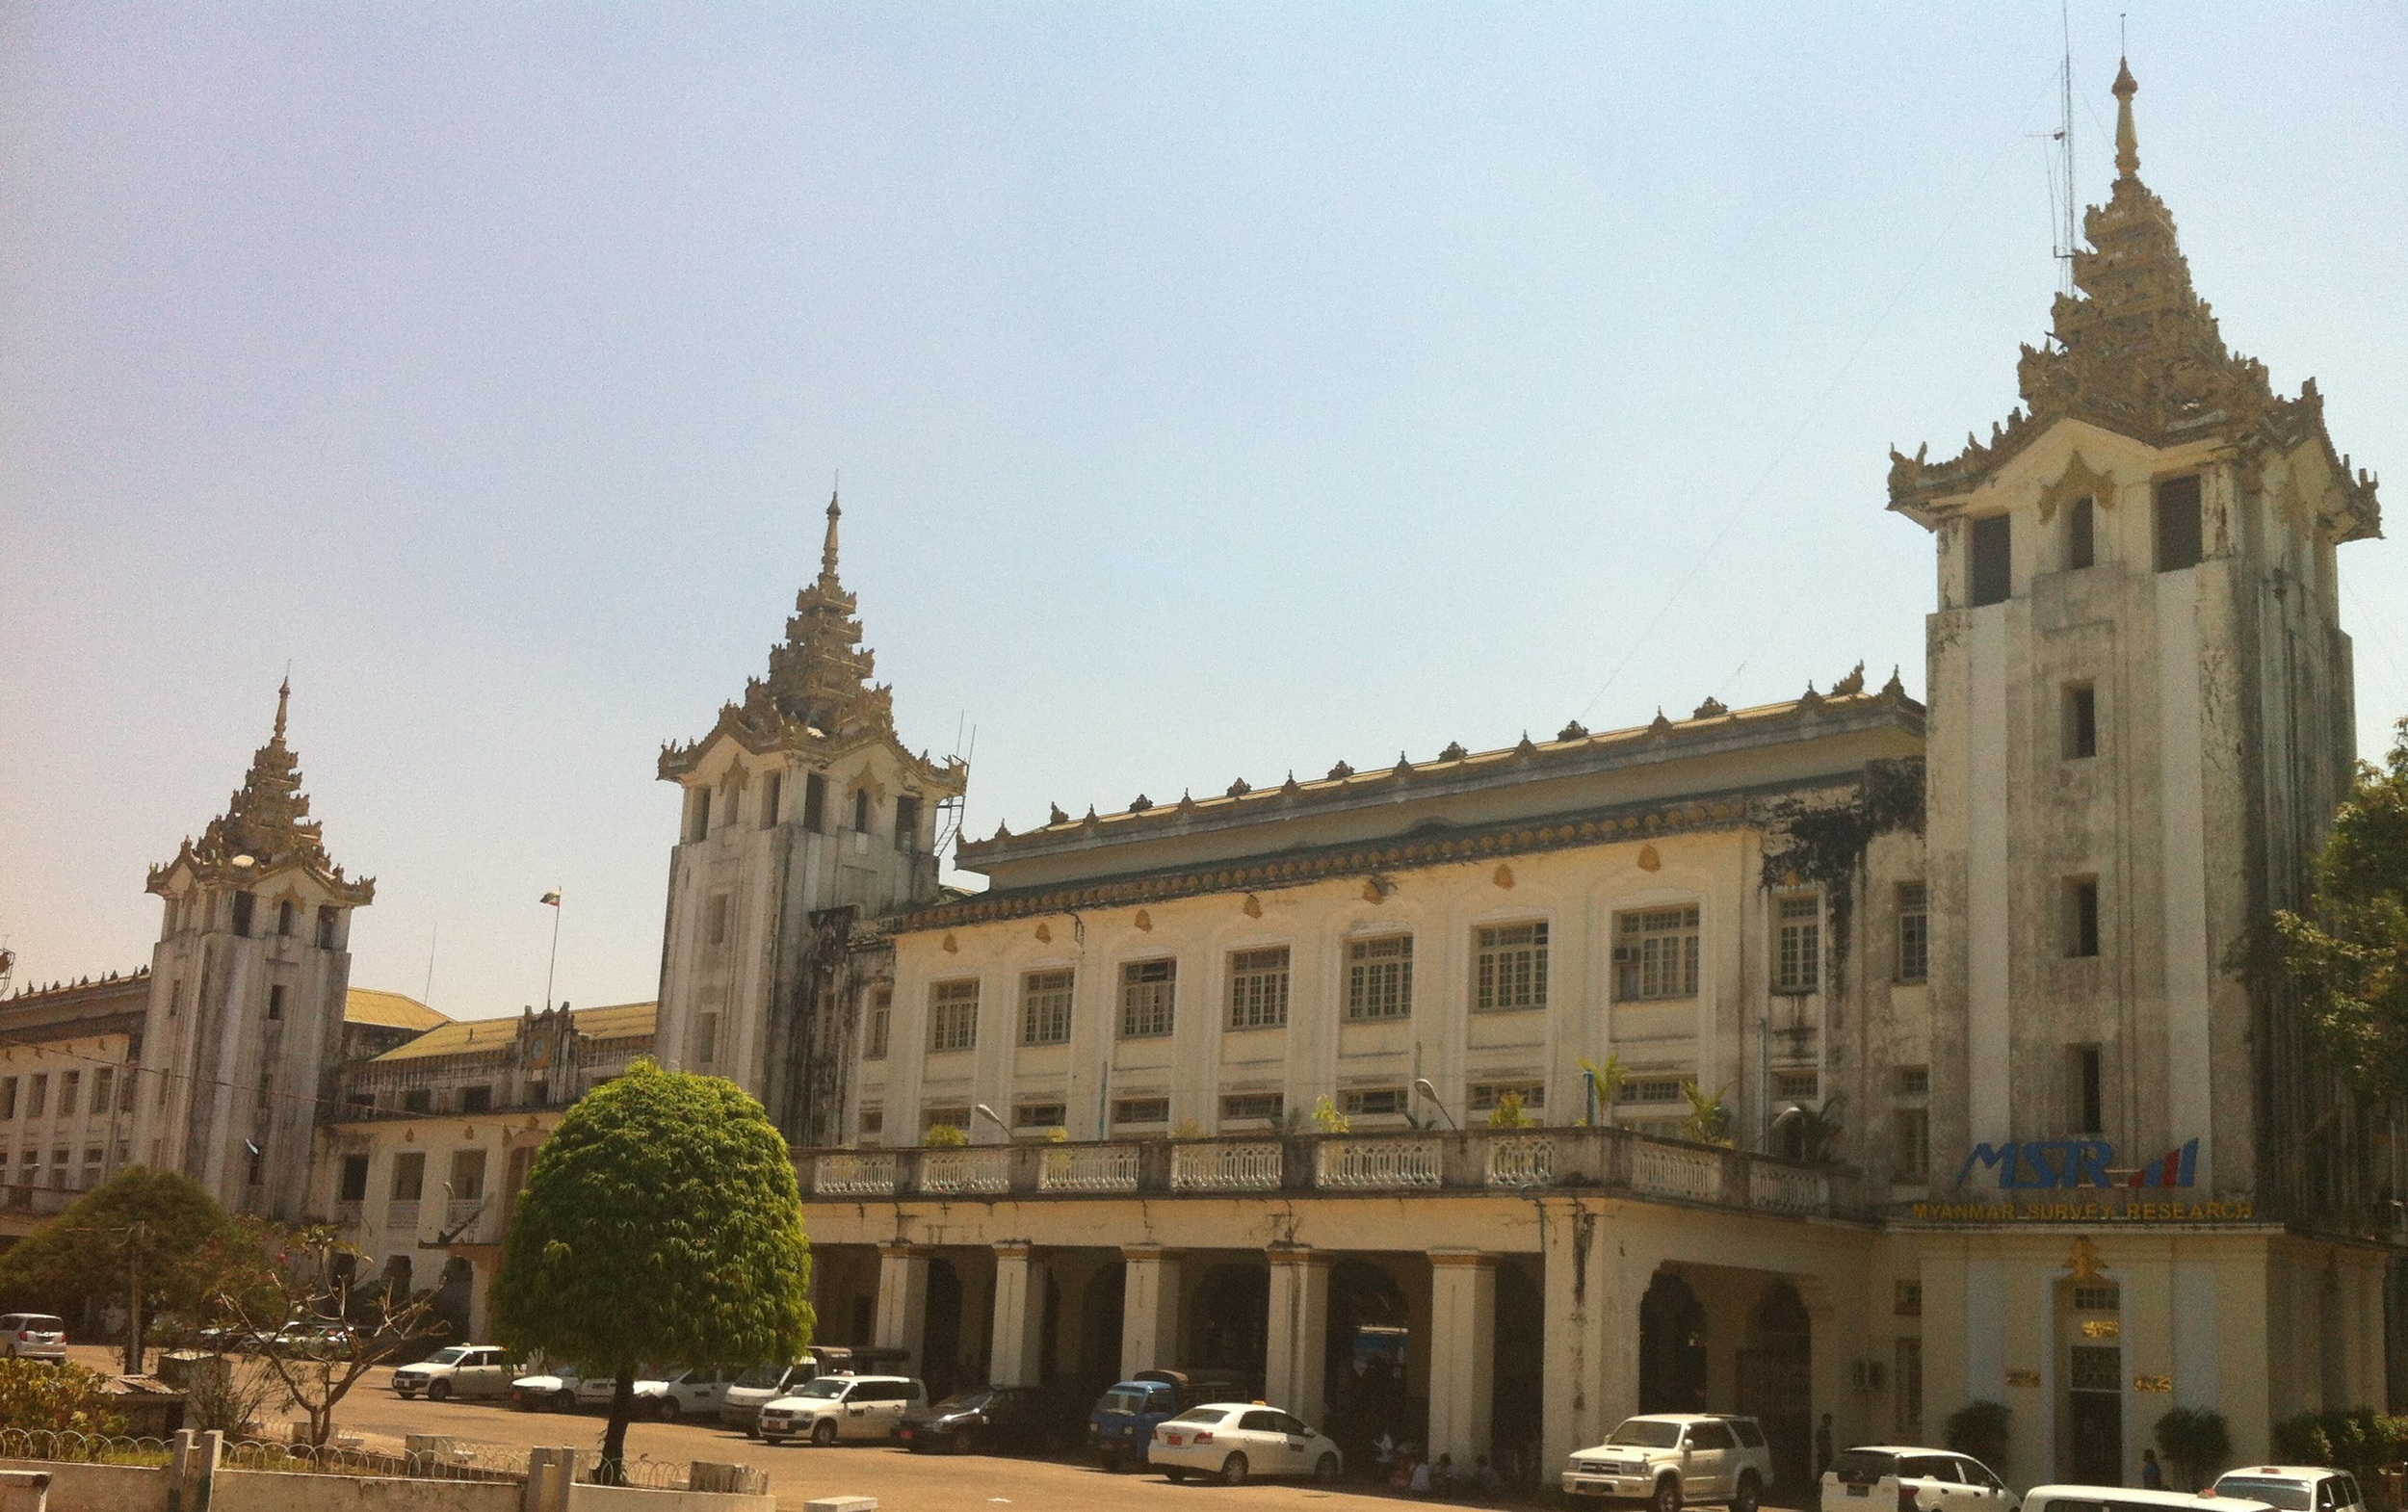 Large government building